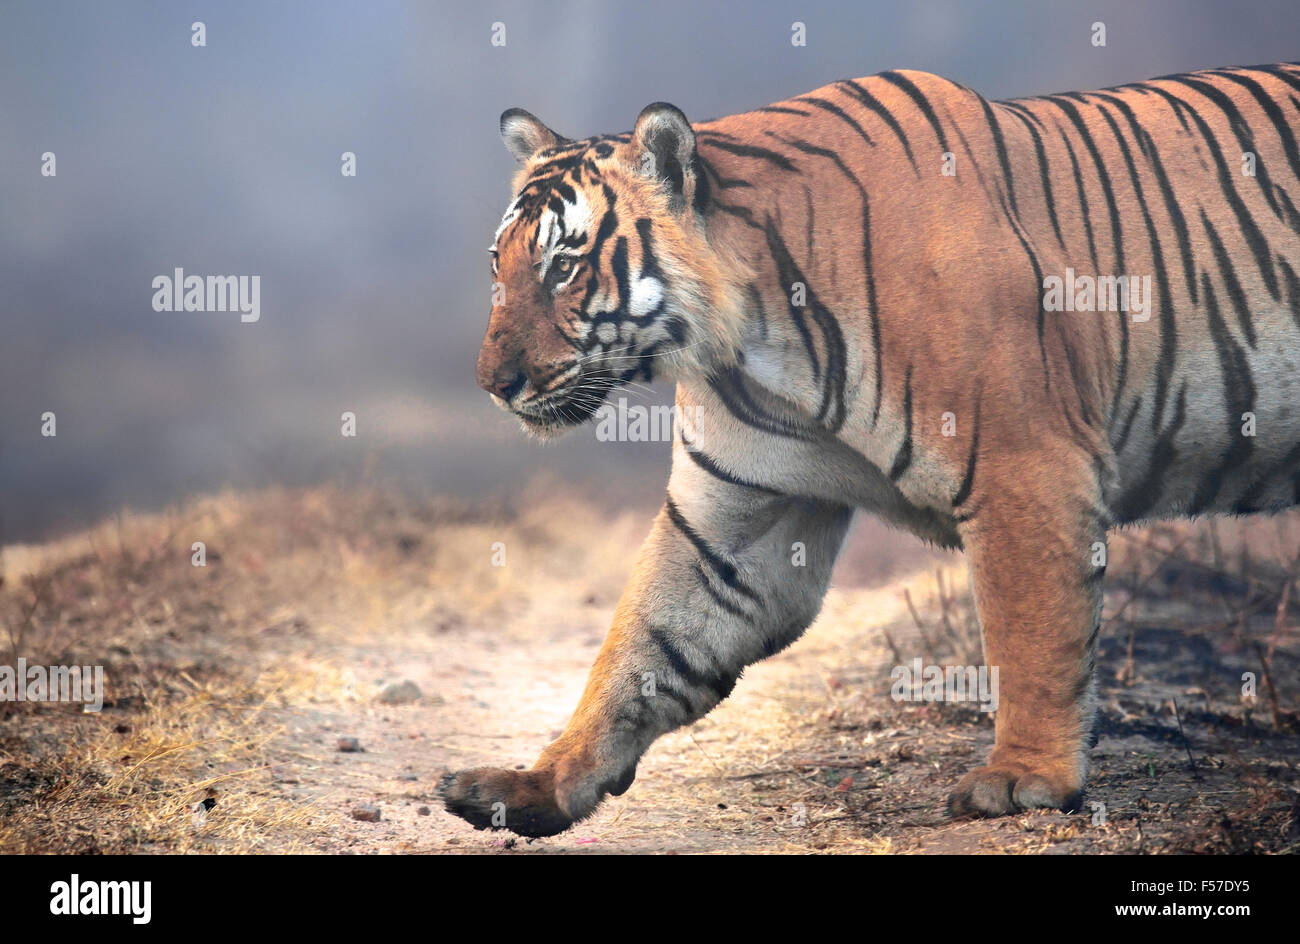 A MASSIVE TIGER ! - Stock Image